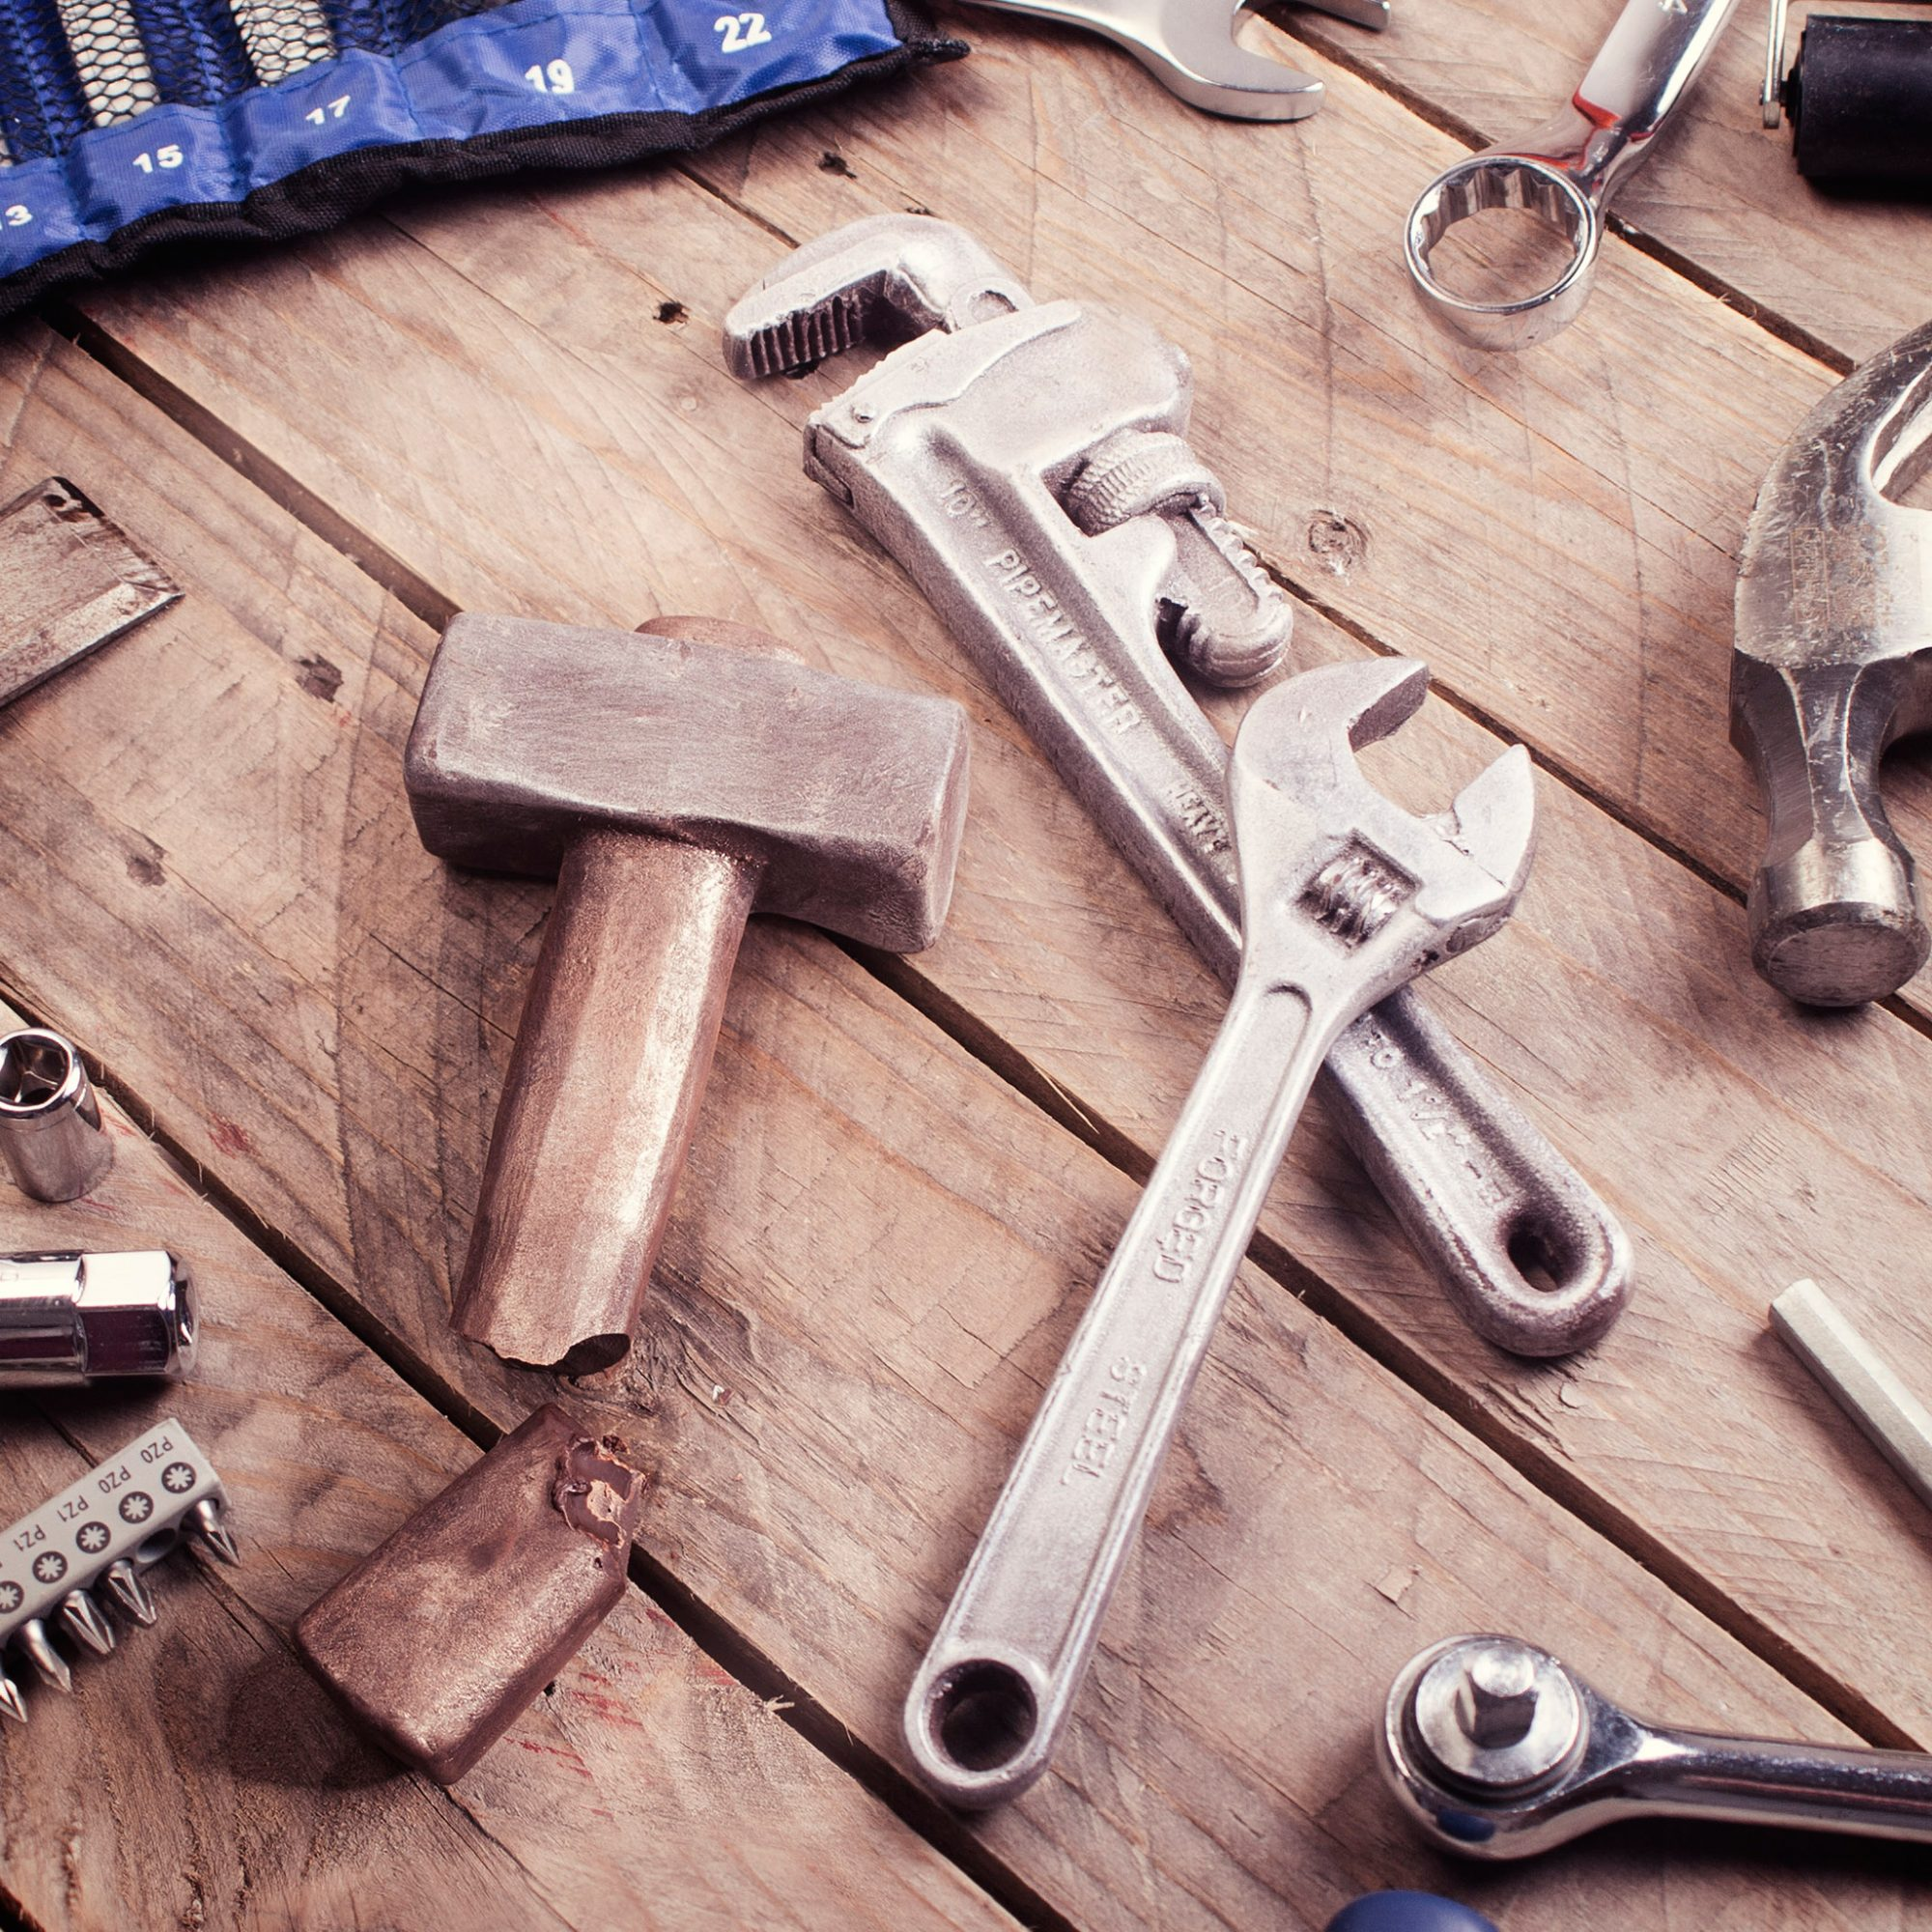 Chocolate Wrenches That Look So Authentic They Could End Up in Your Tool Kit